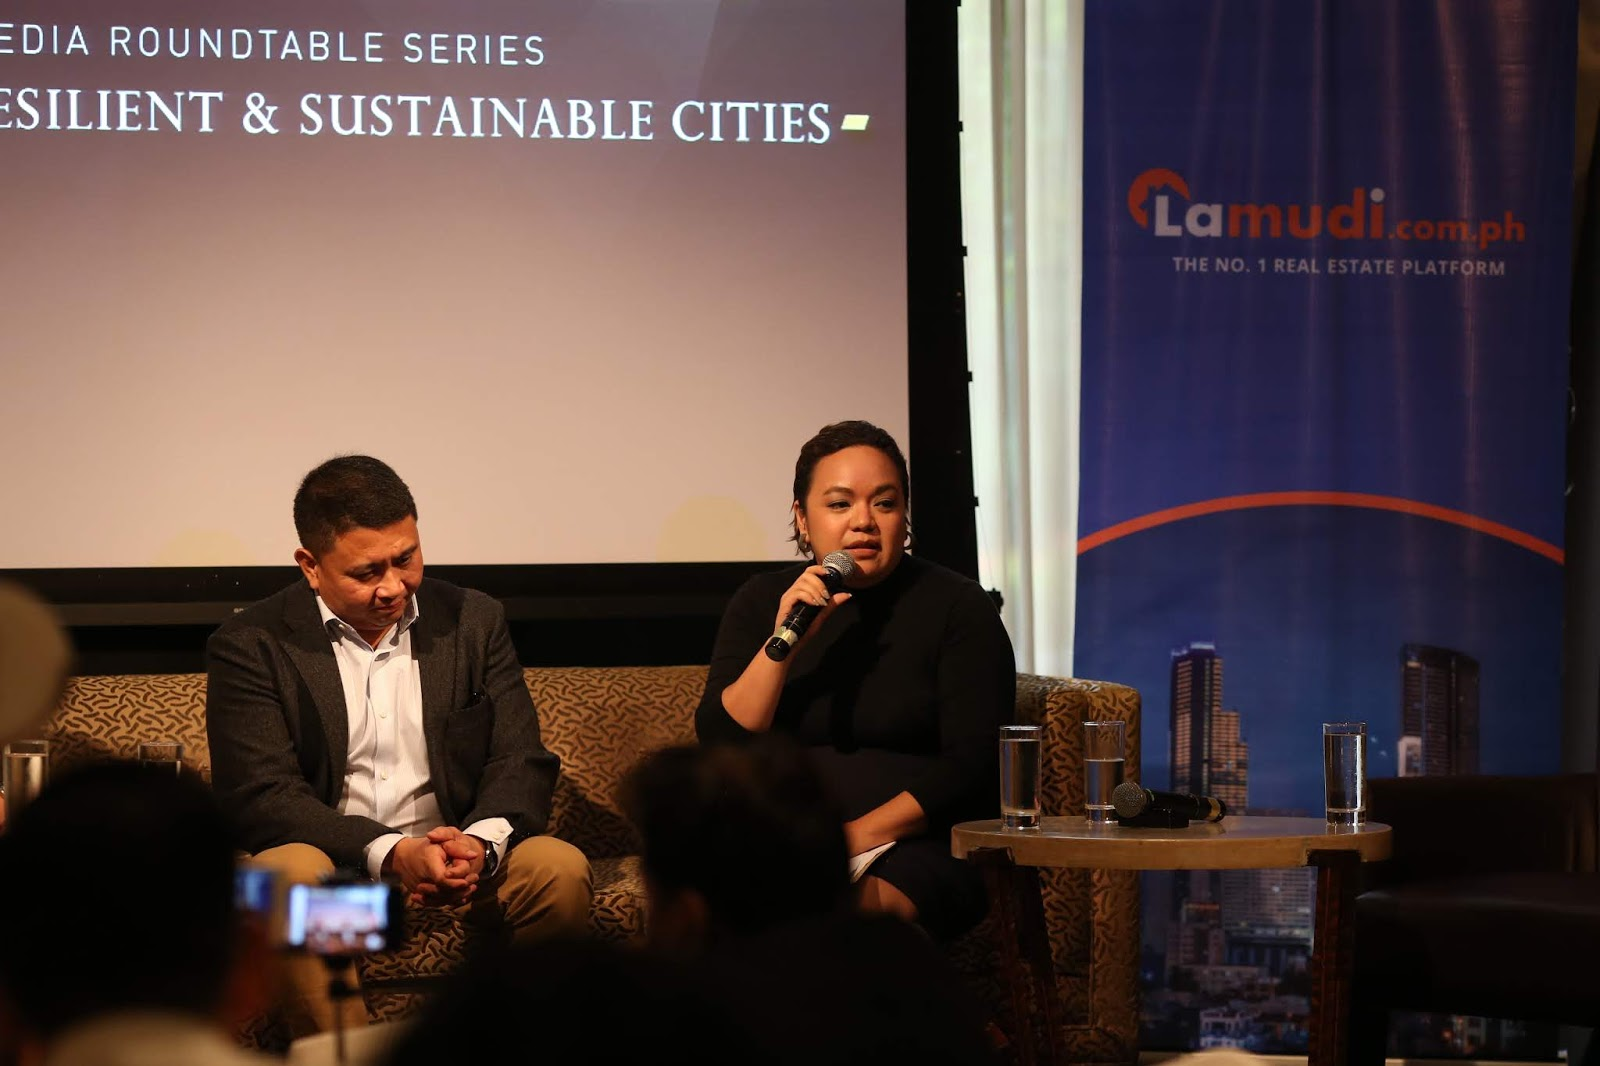 |Business| Lamudi's Outlook 2019: Building Resilient and Sustainable Cities